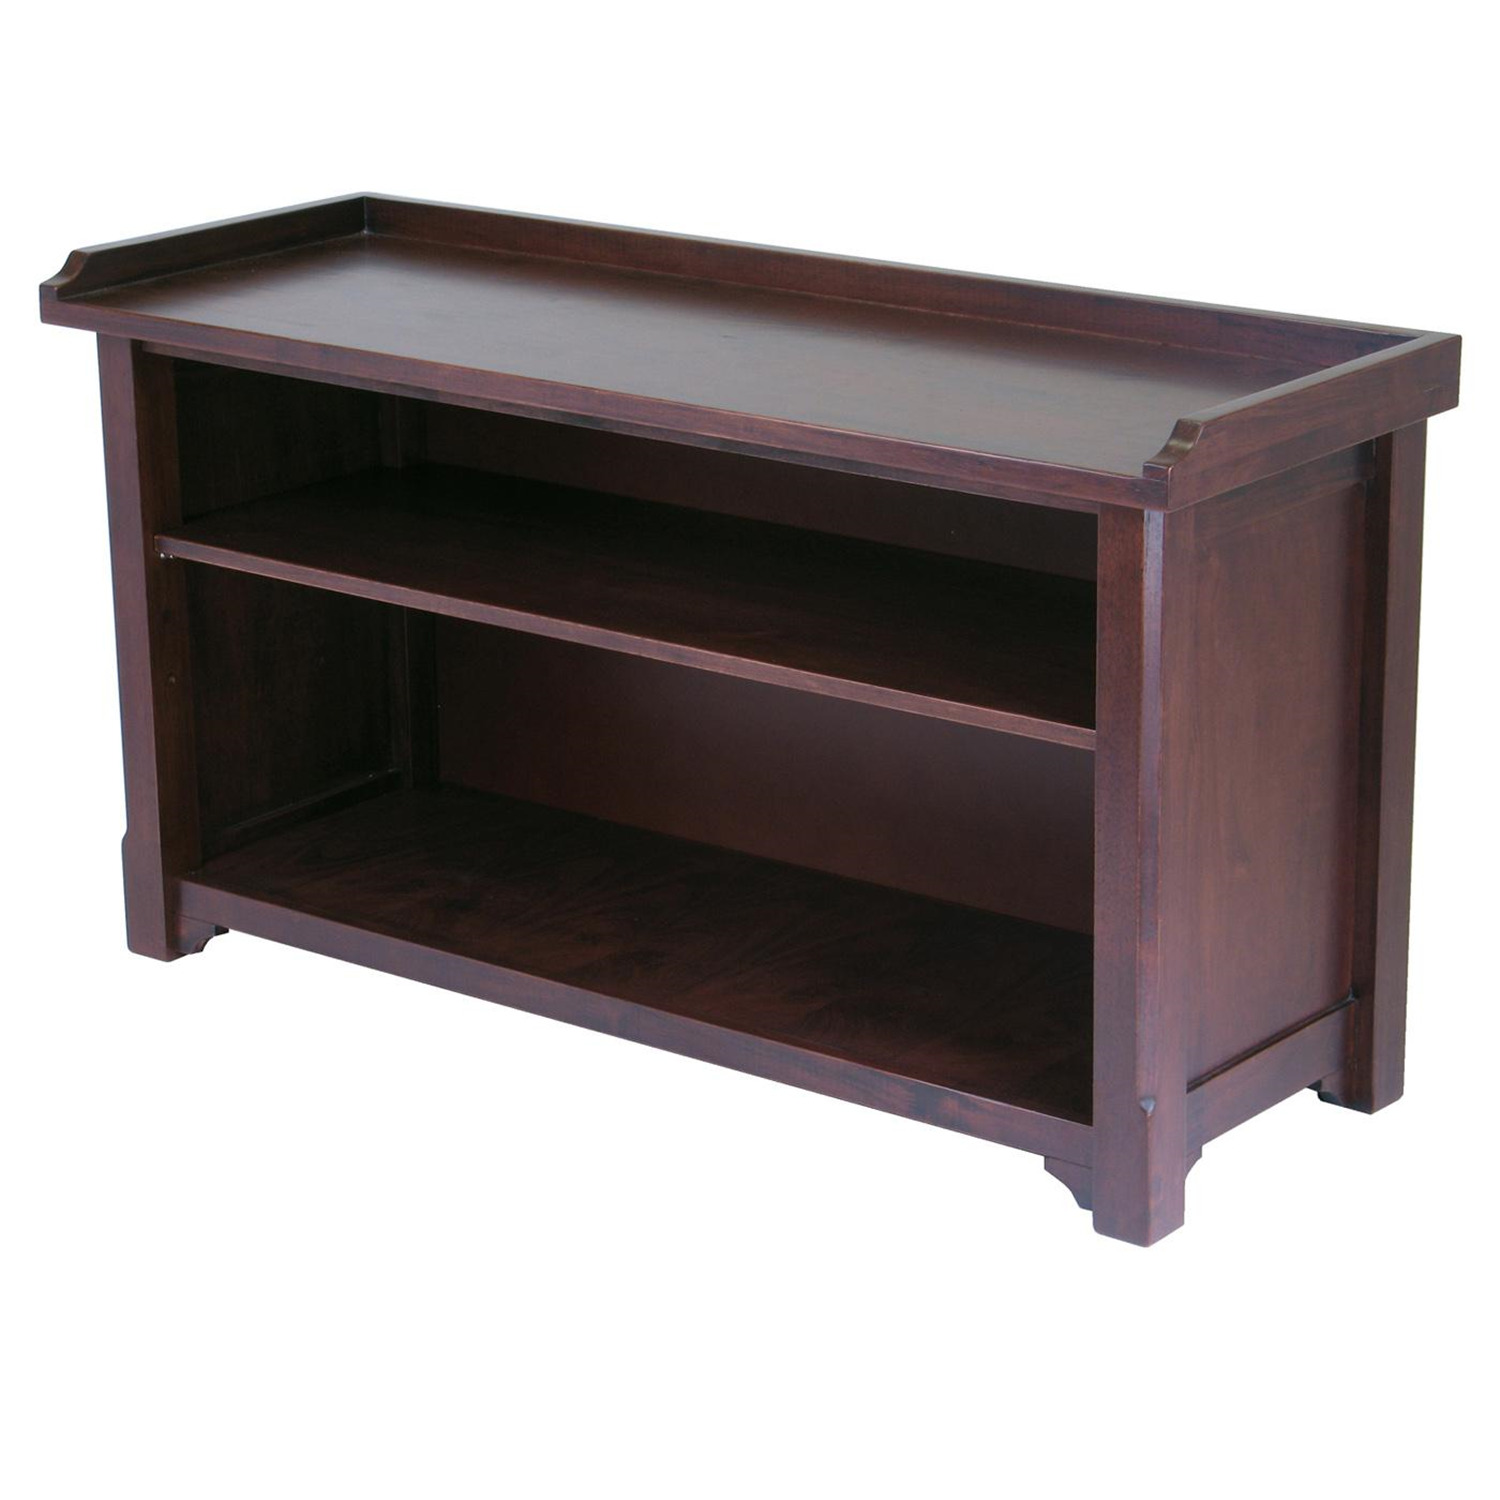 Winsome Milan Bench With Storage Shelf By Oj Commerce